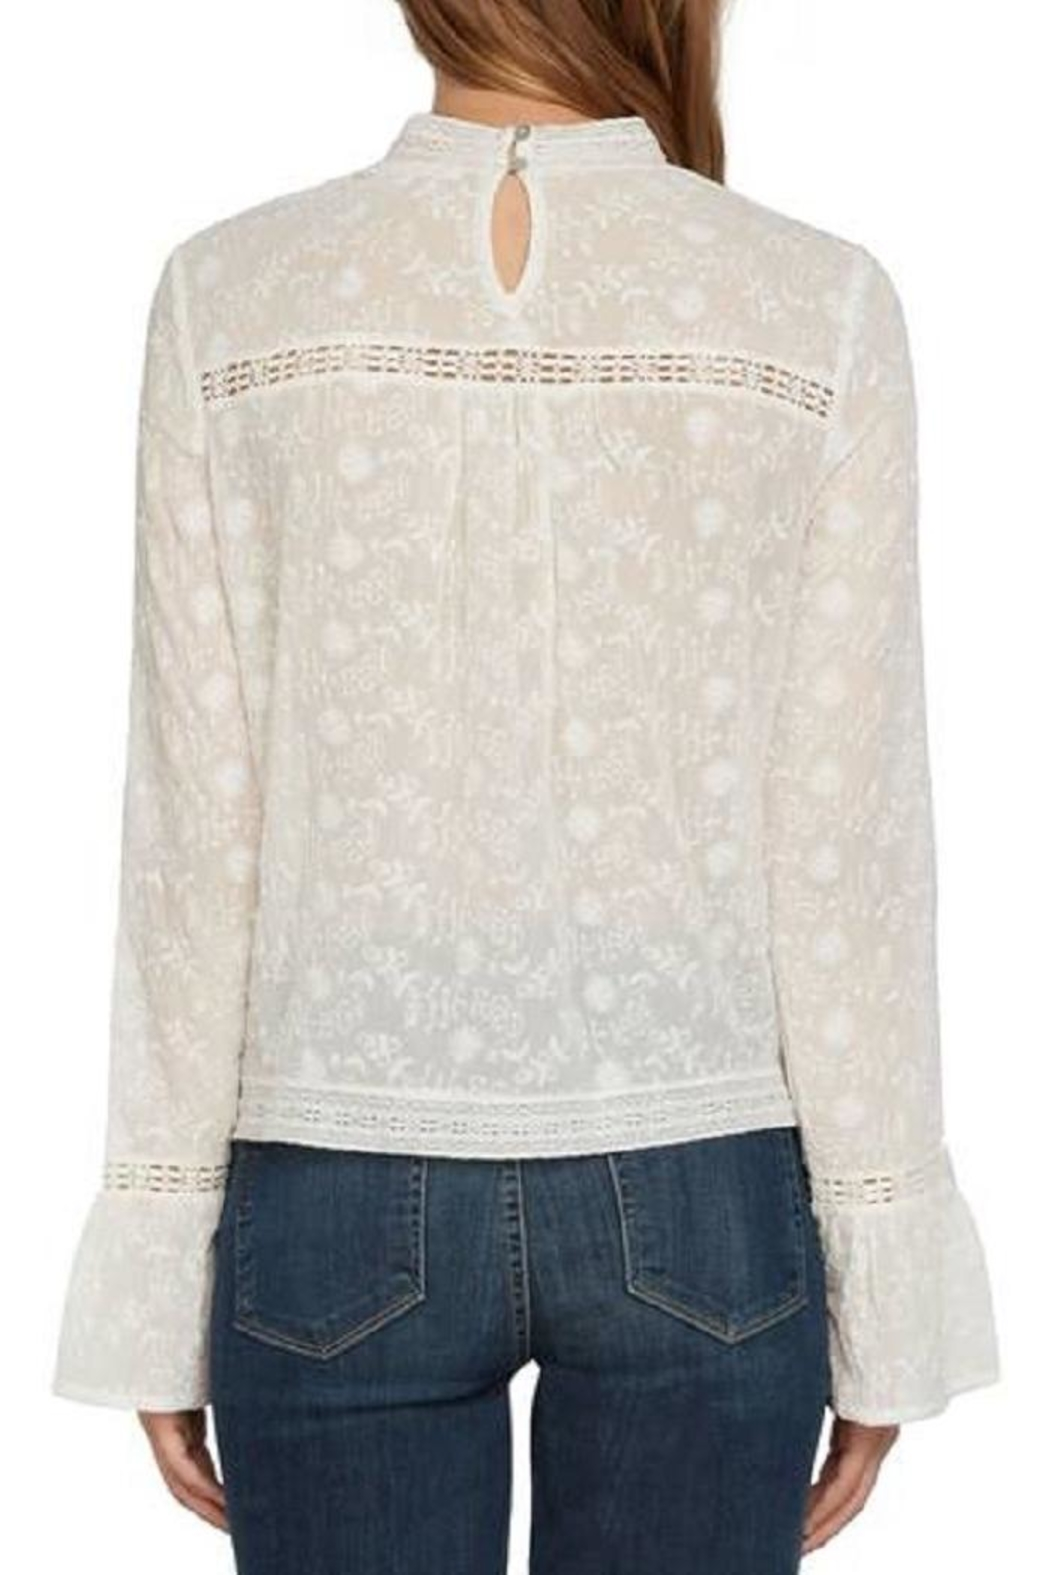 Willow & Clay Ivory Lace Top - Front Full Image